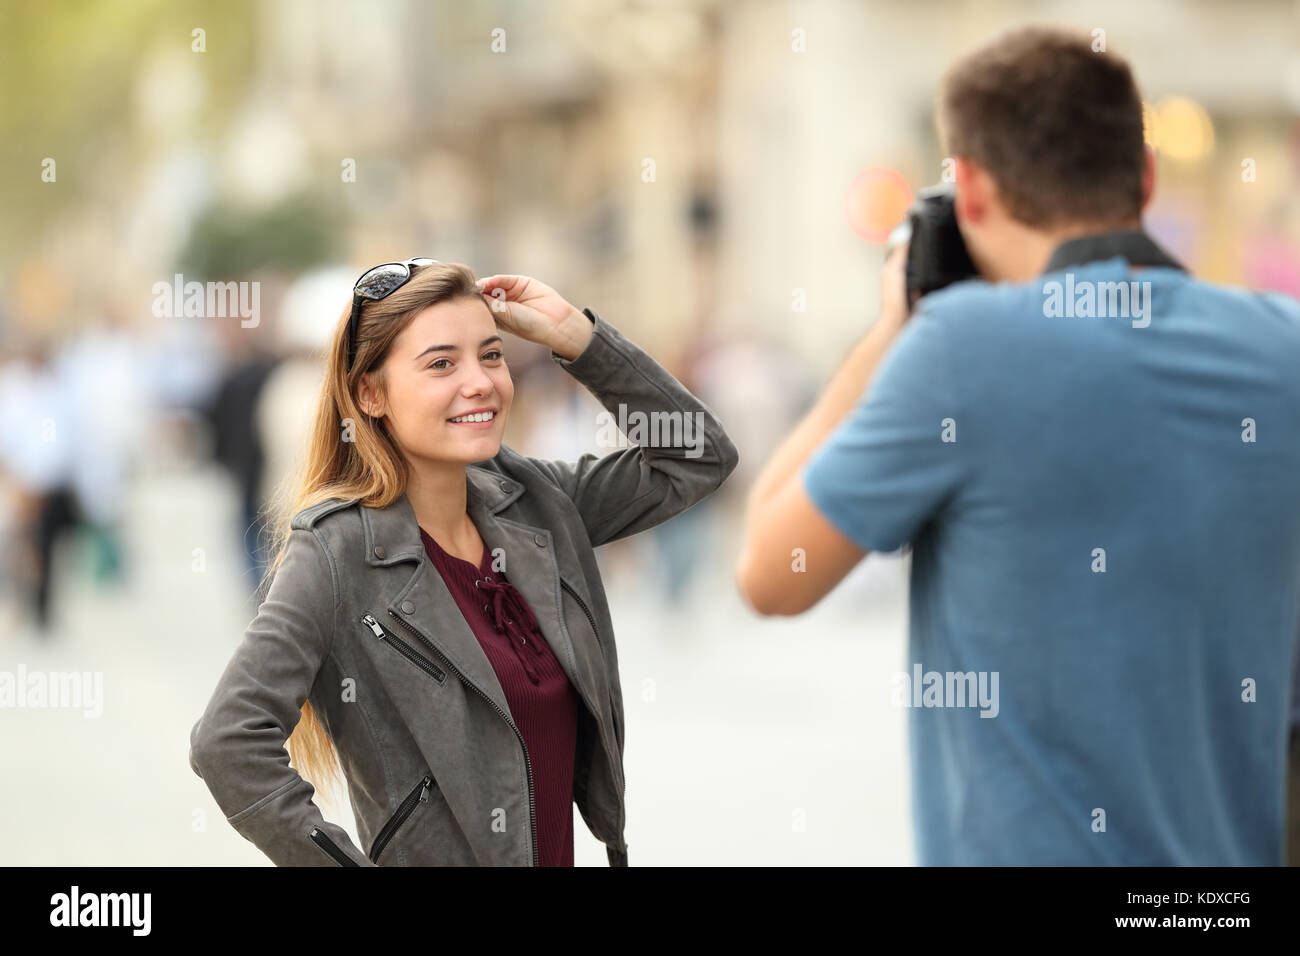 Photographer photographing to a fashion model on the street - Stock Image